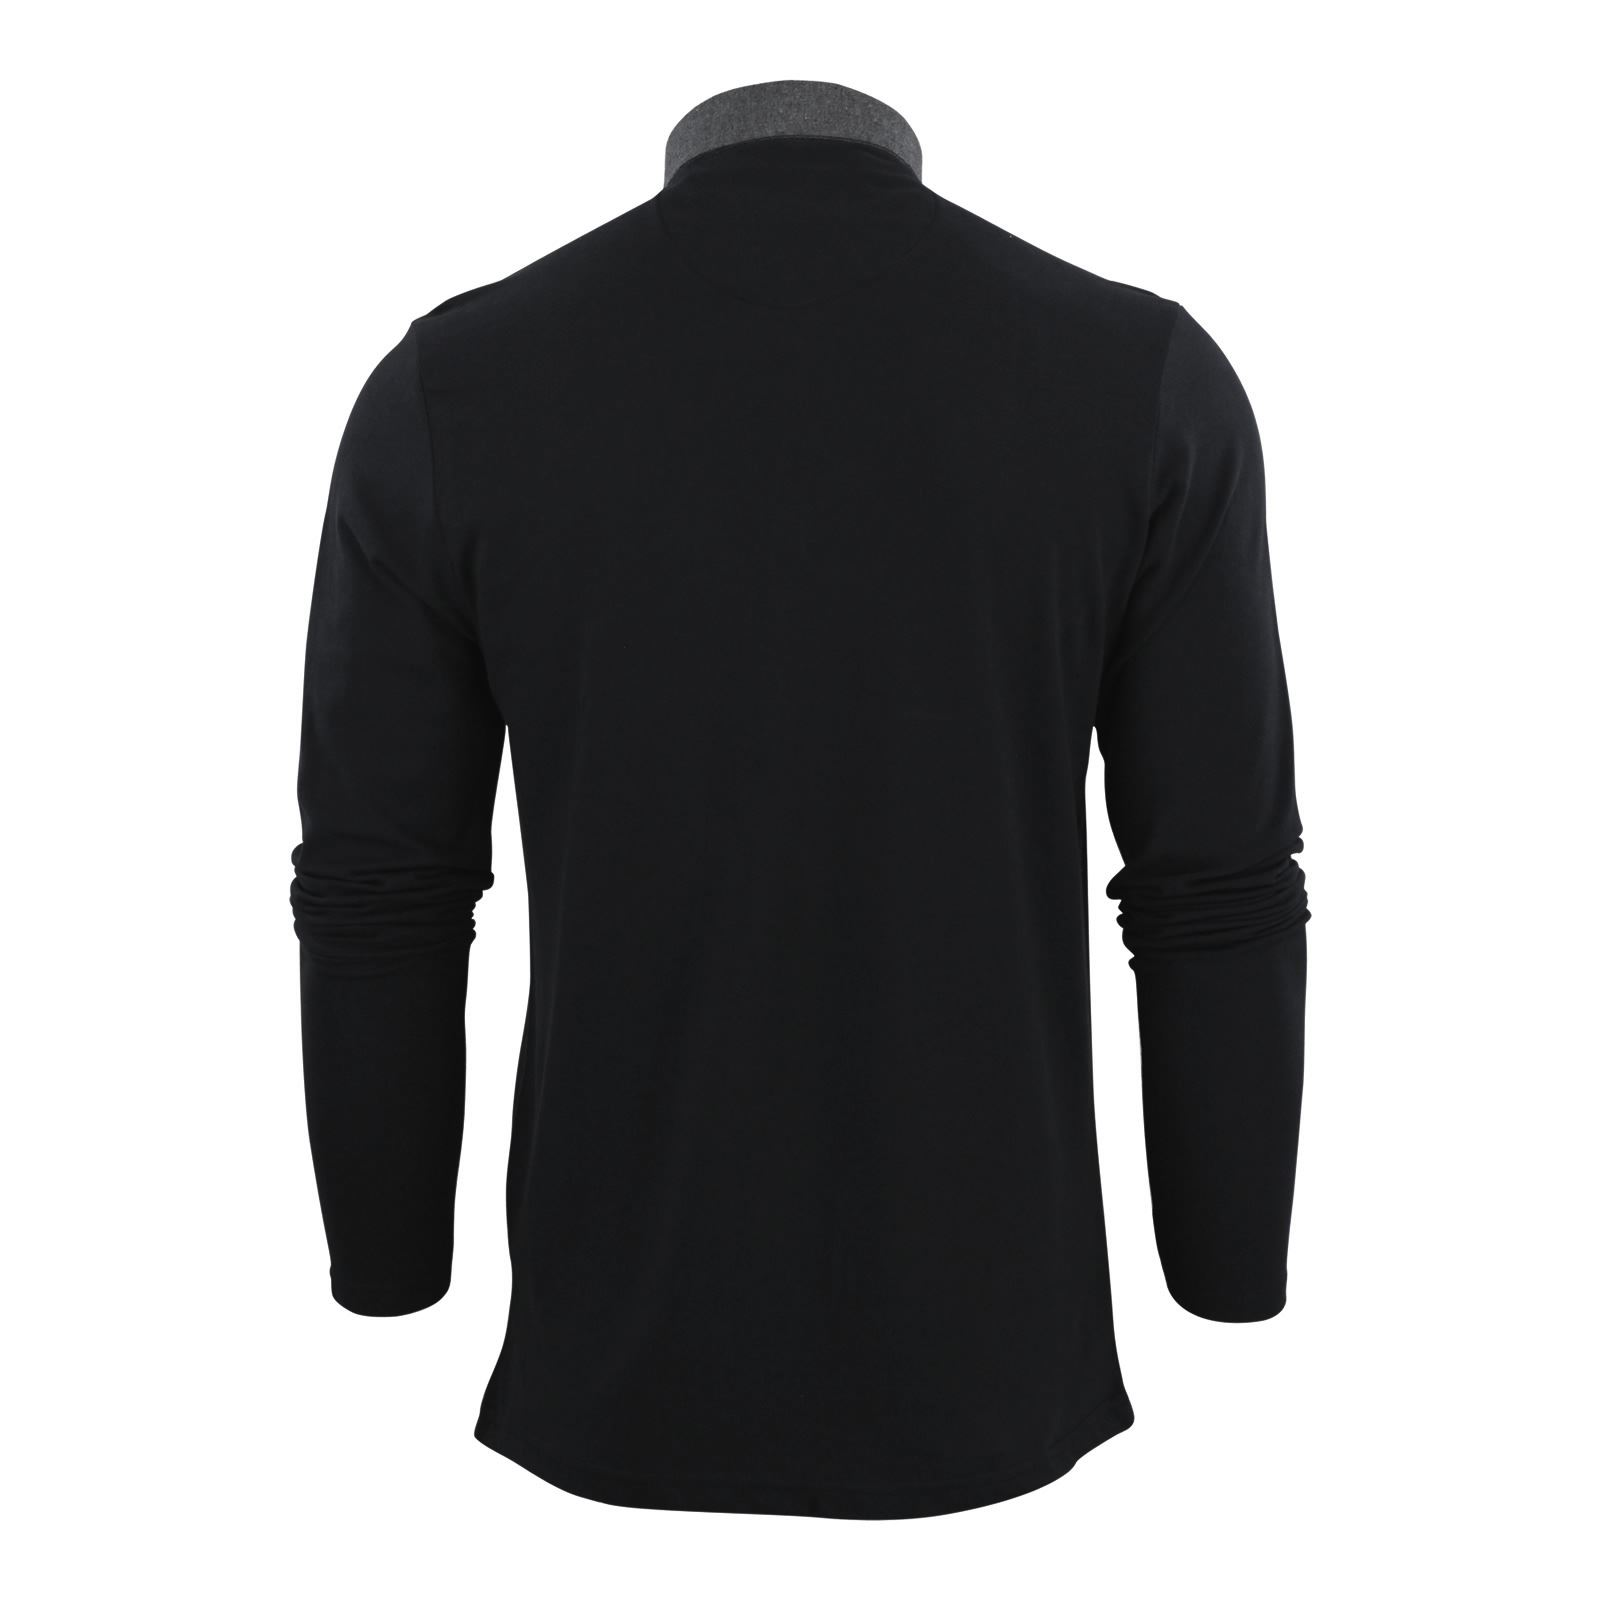 Mens-Polo-Shirt-Brave-Soul-Long-Sleeve-Collared-Top-In-Various-Styles thumbnail 30